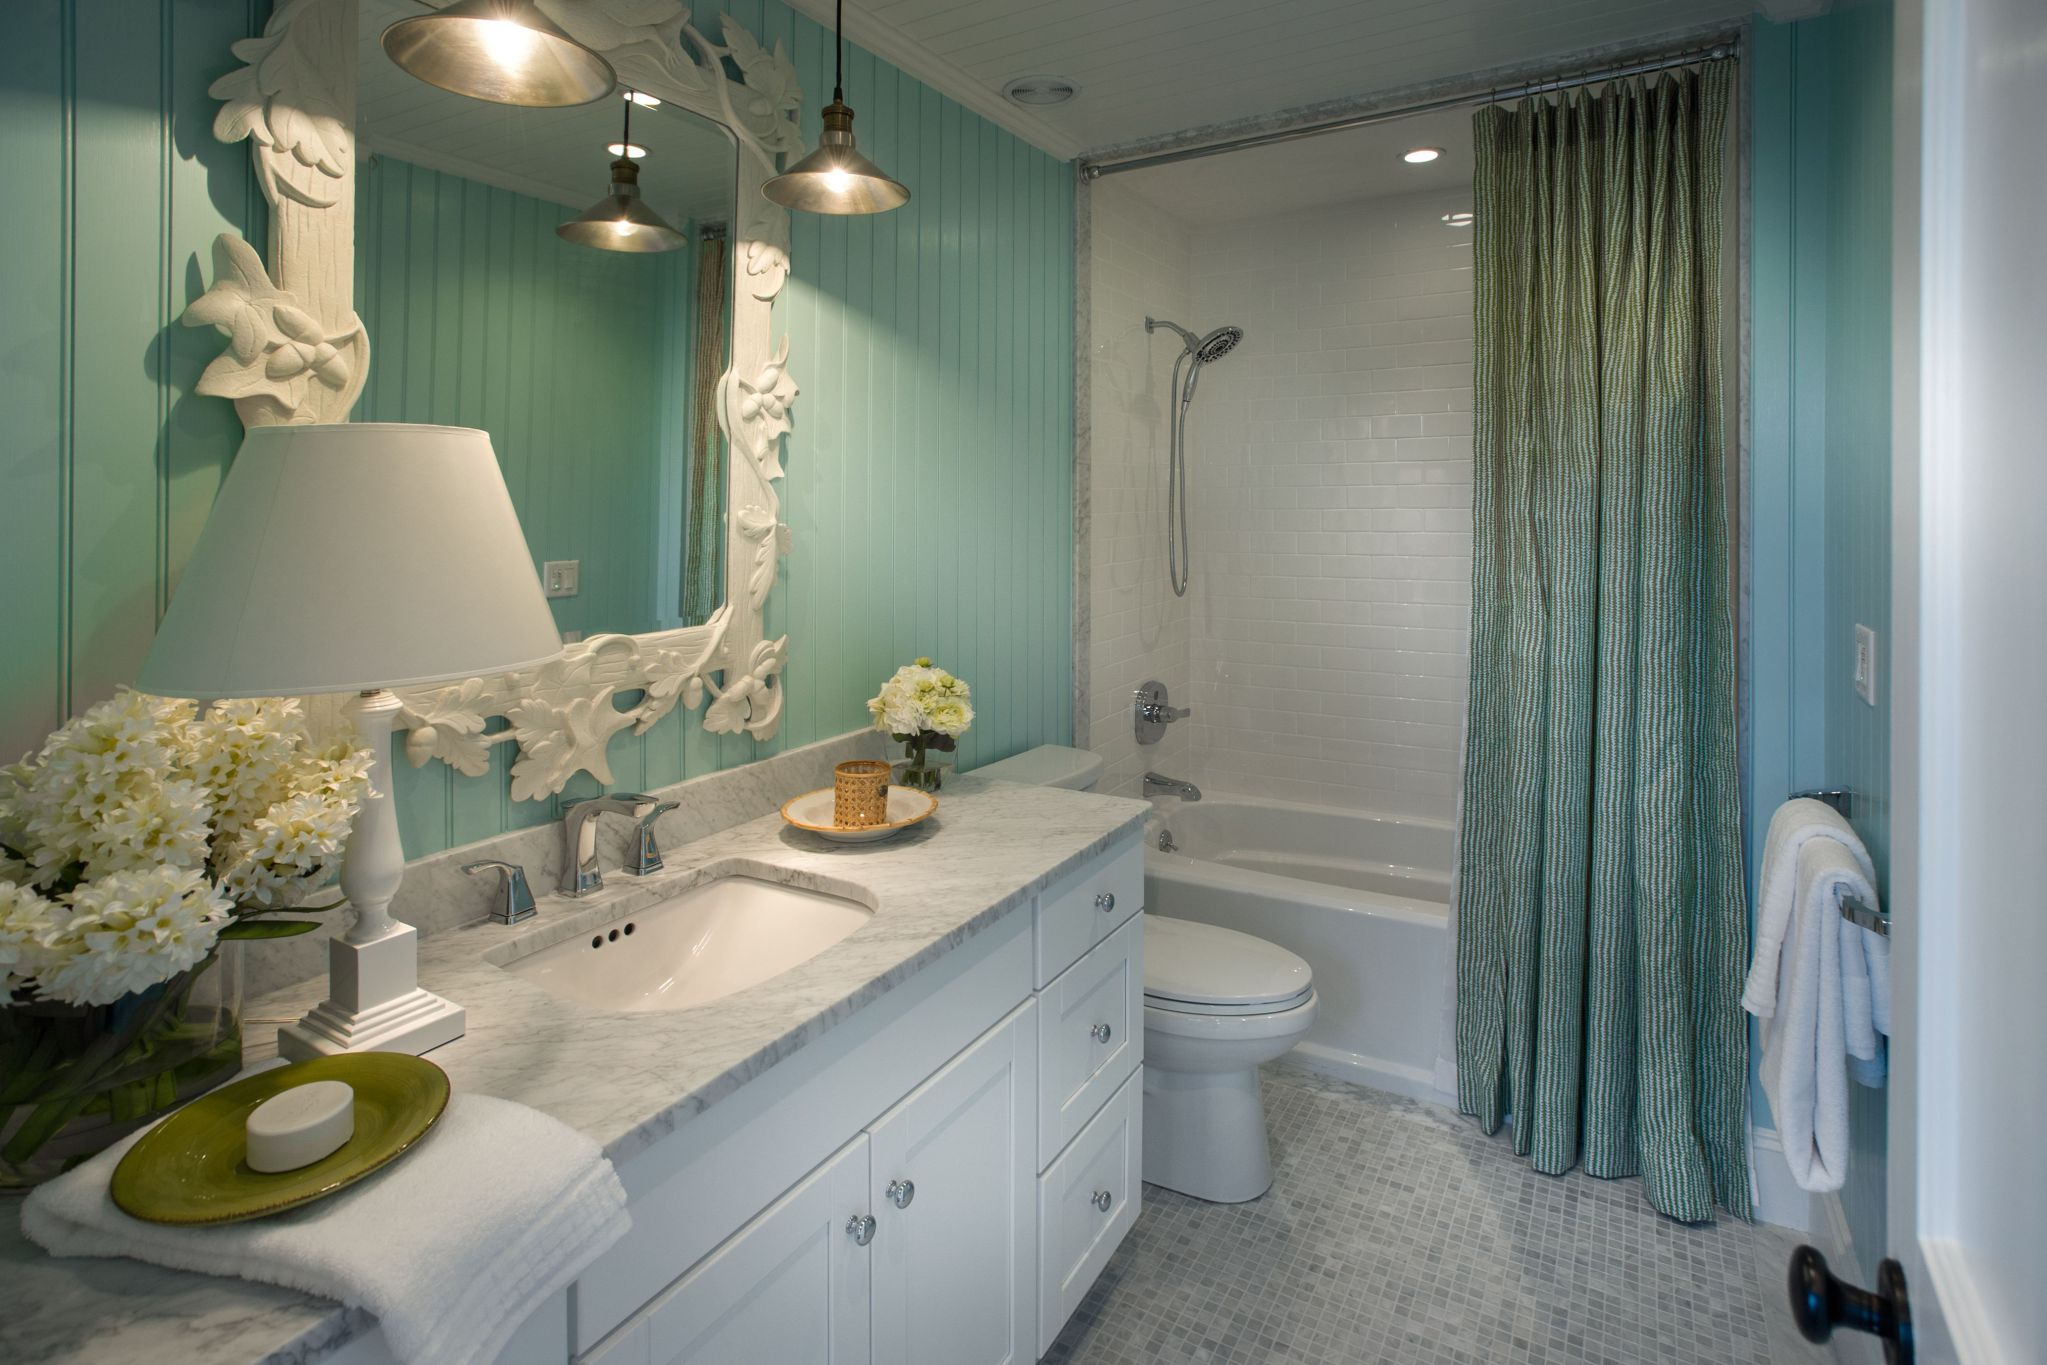 Fantastic Bathroom Wall Ideas Plus White Cabinet and Large Mirror